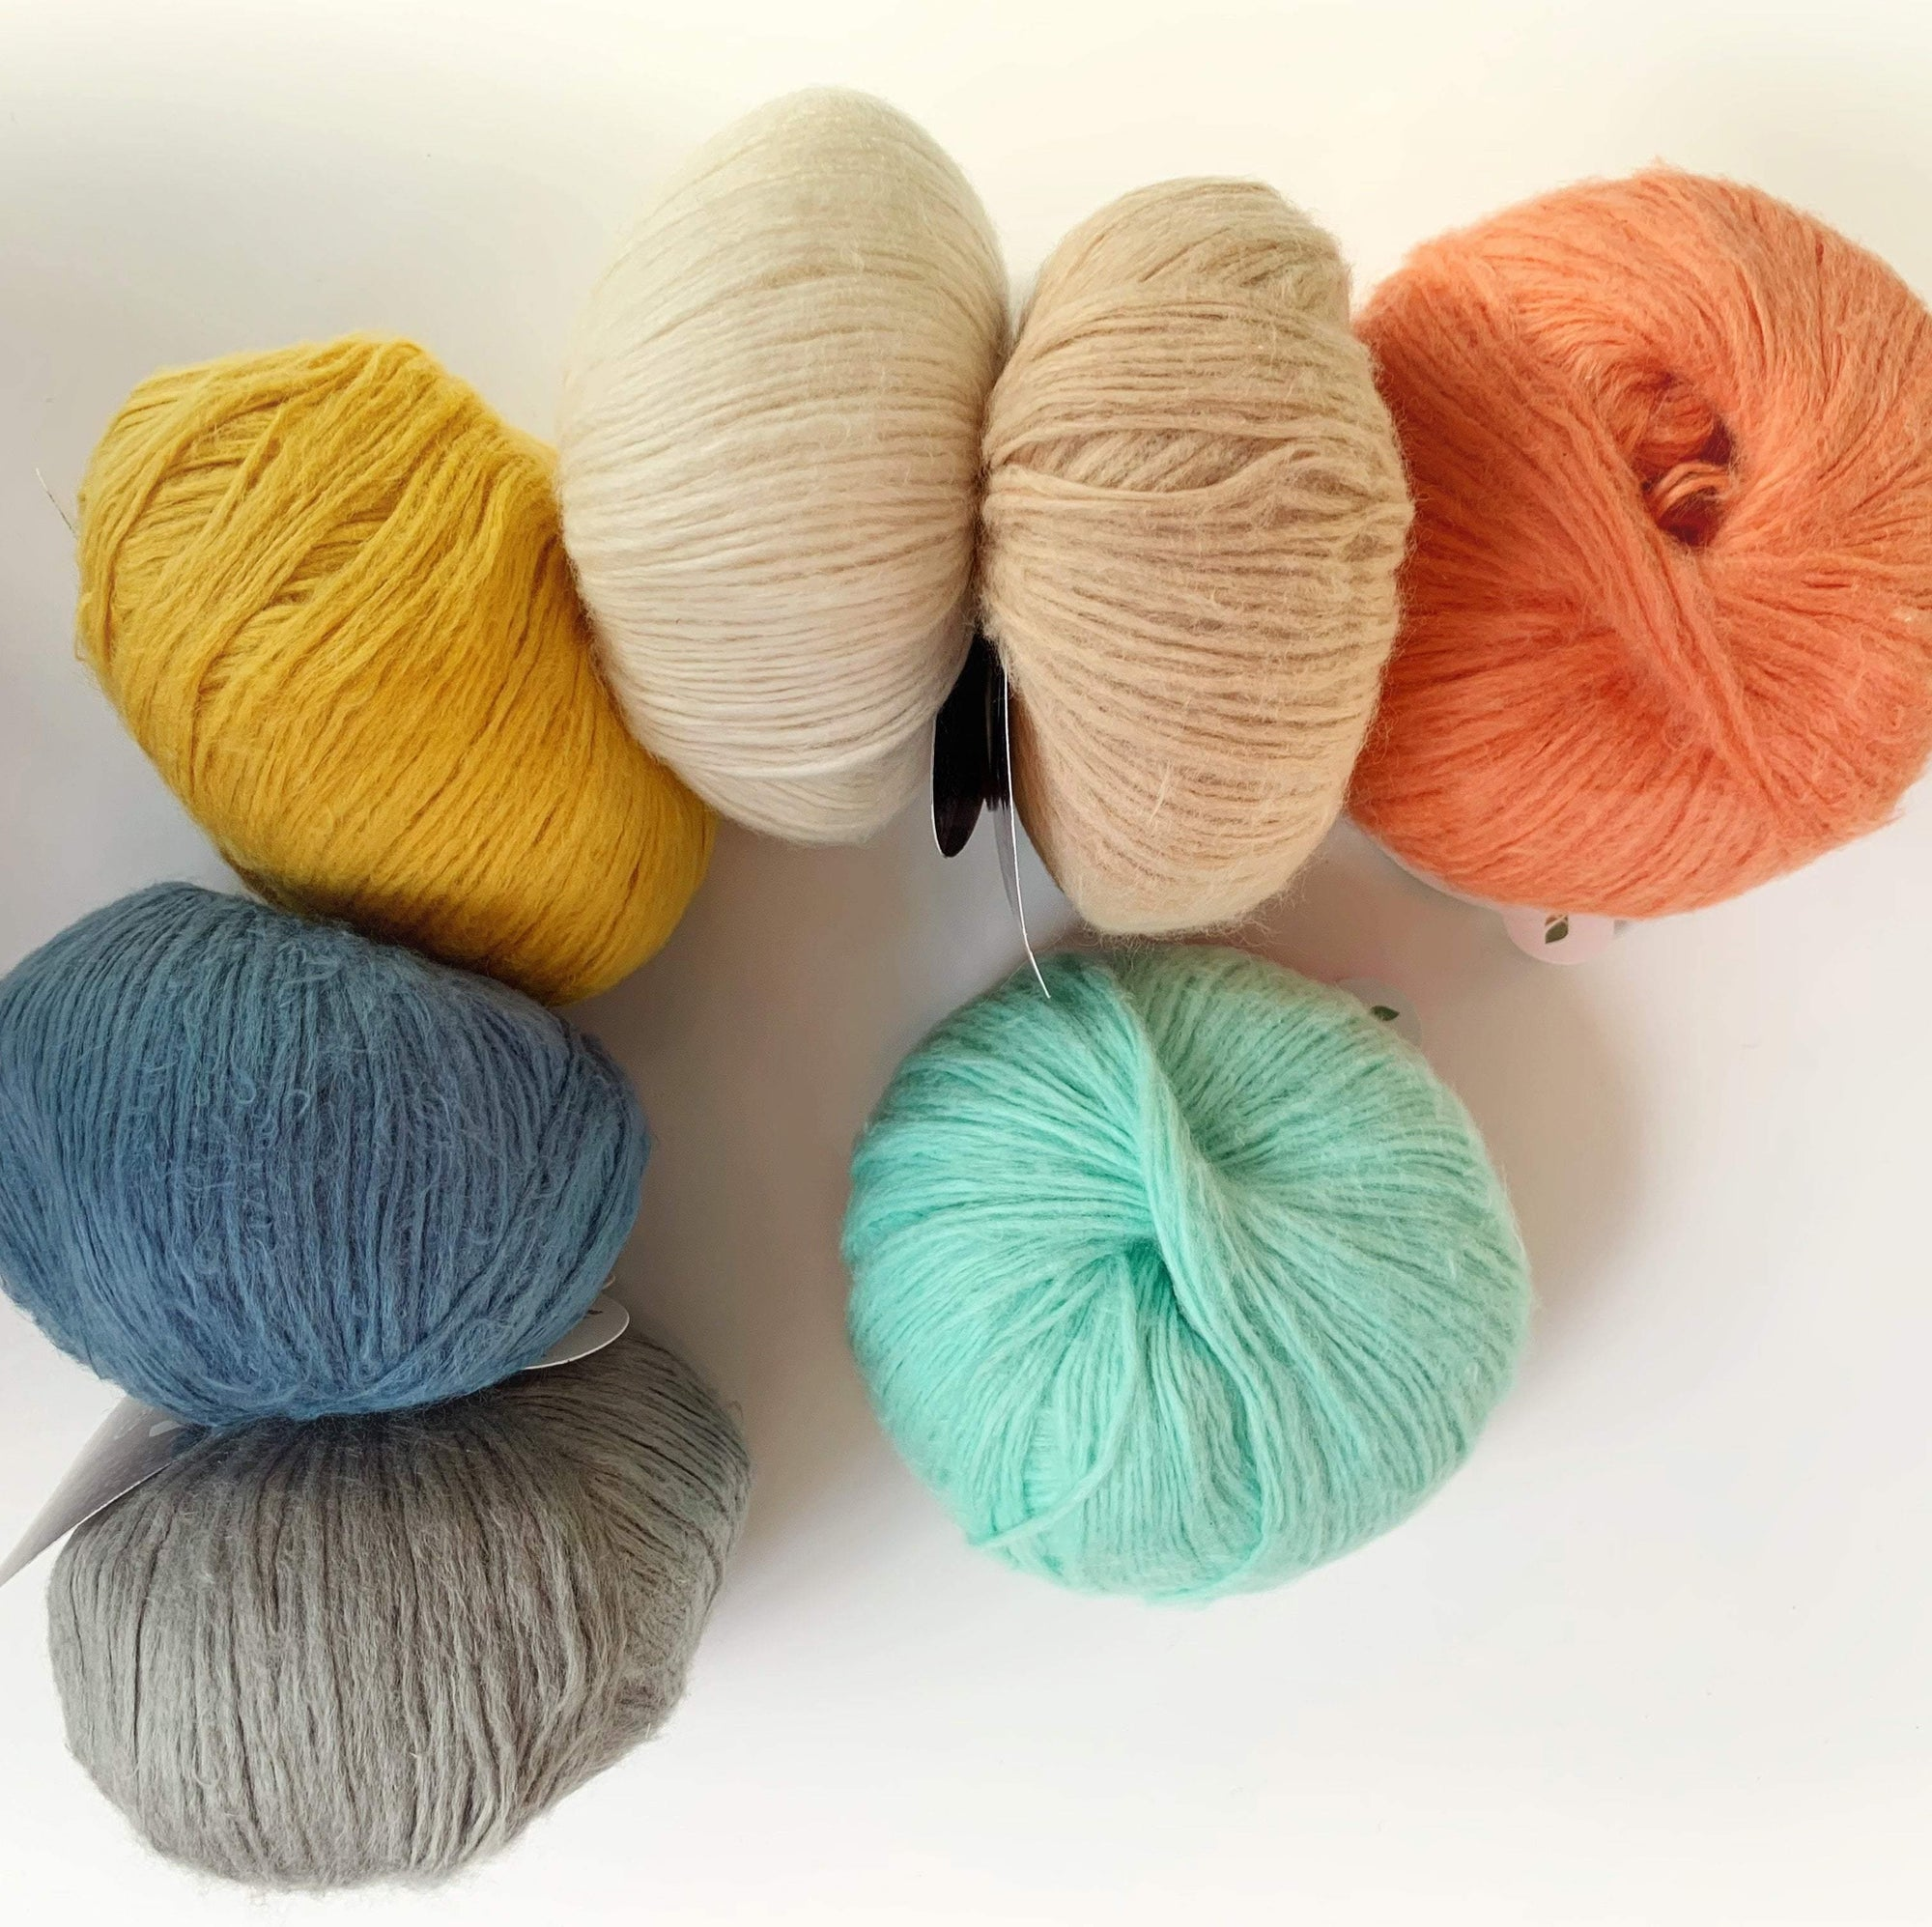 Suave Pascuali Yarn Clotted Cream 50